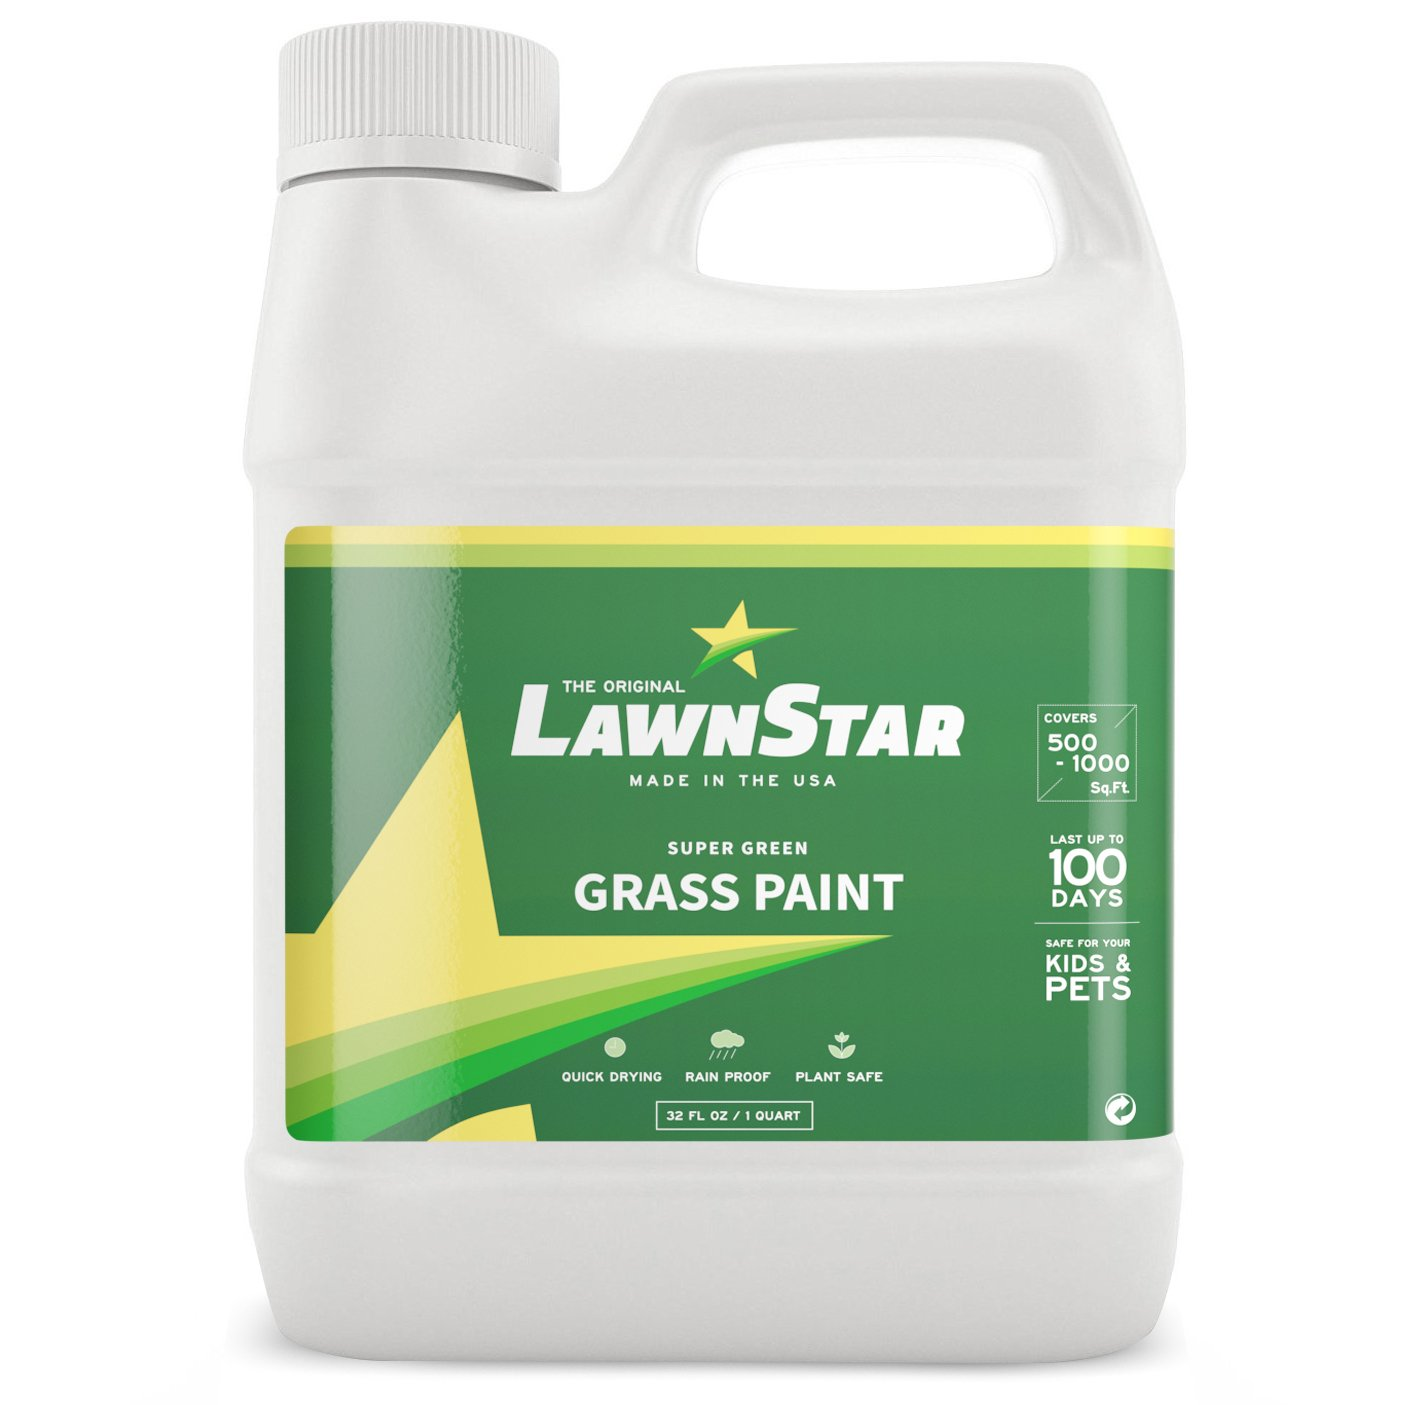 LawnStar Grass Paint, 32 fl. oz. - Makes Grass Green Again - The Non-Toxic Solution for Water Restrictions & Drought - Skyrocket Your Curb Appeal Today! (Covers 500-1,000 sq. ft.) by Lawn Star